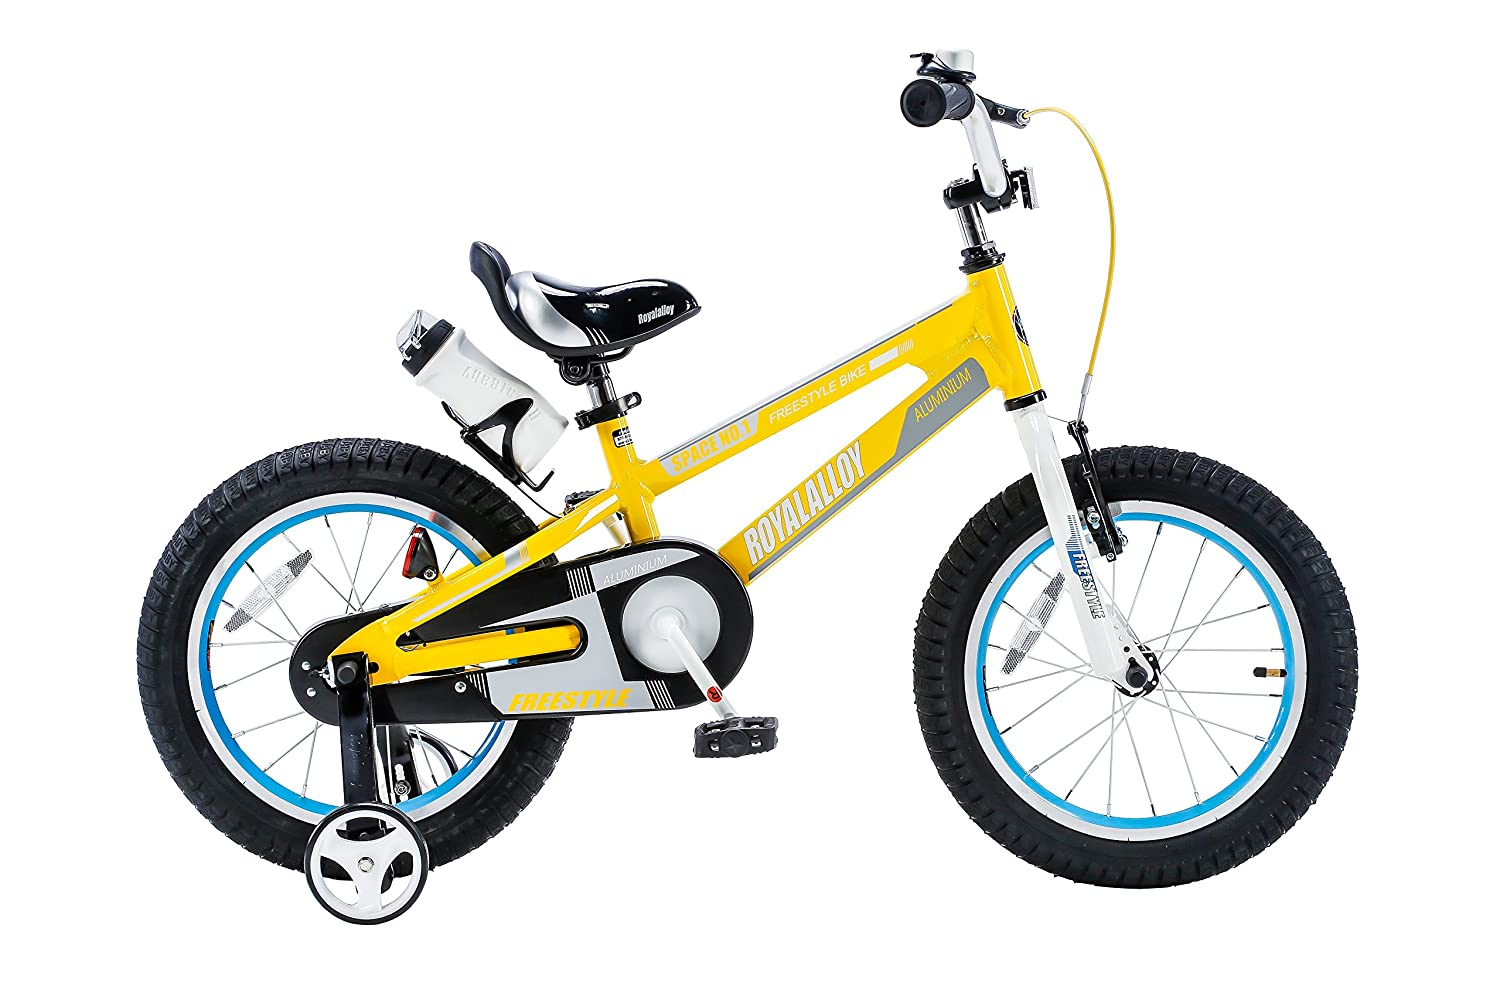 RoyalBaby Space 16 Inch Aluminum Bike